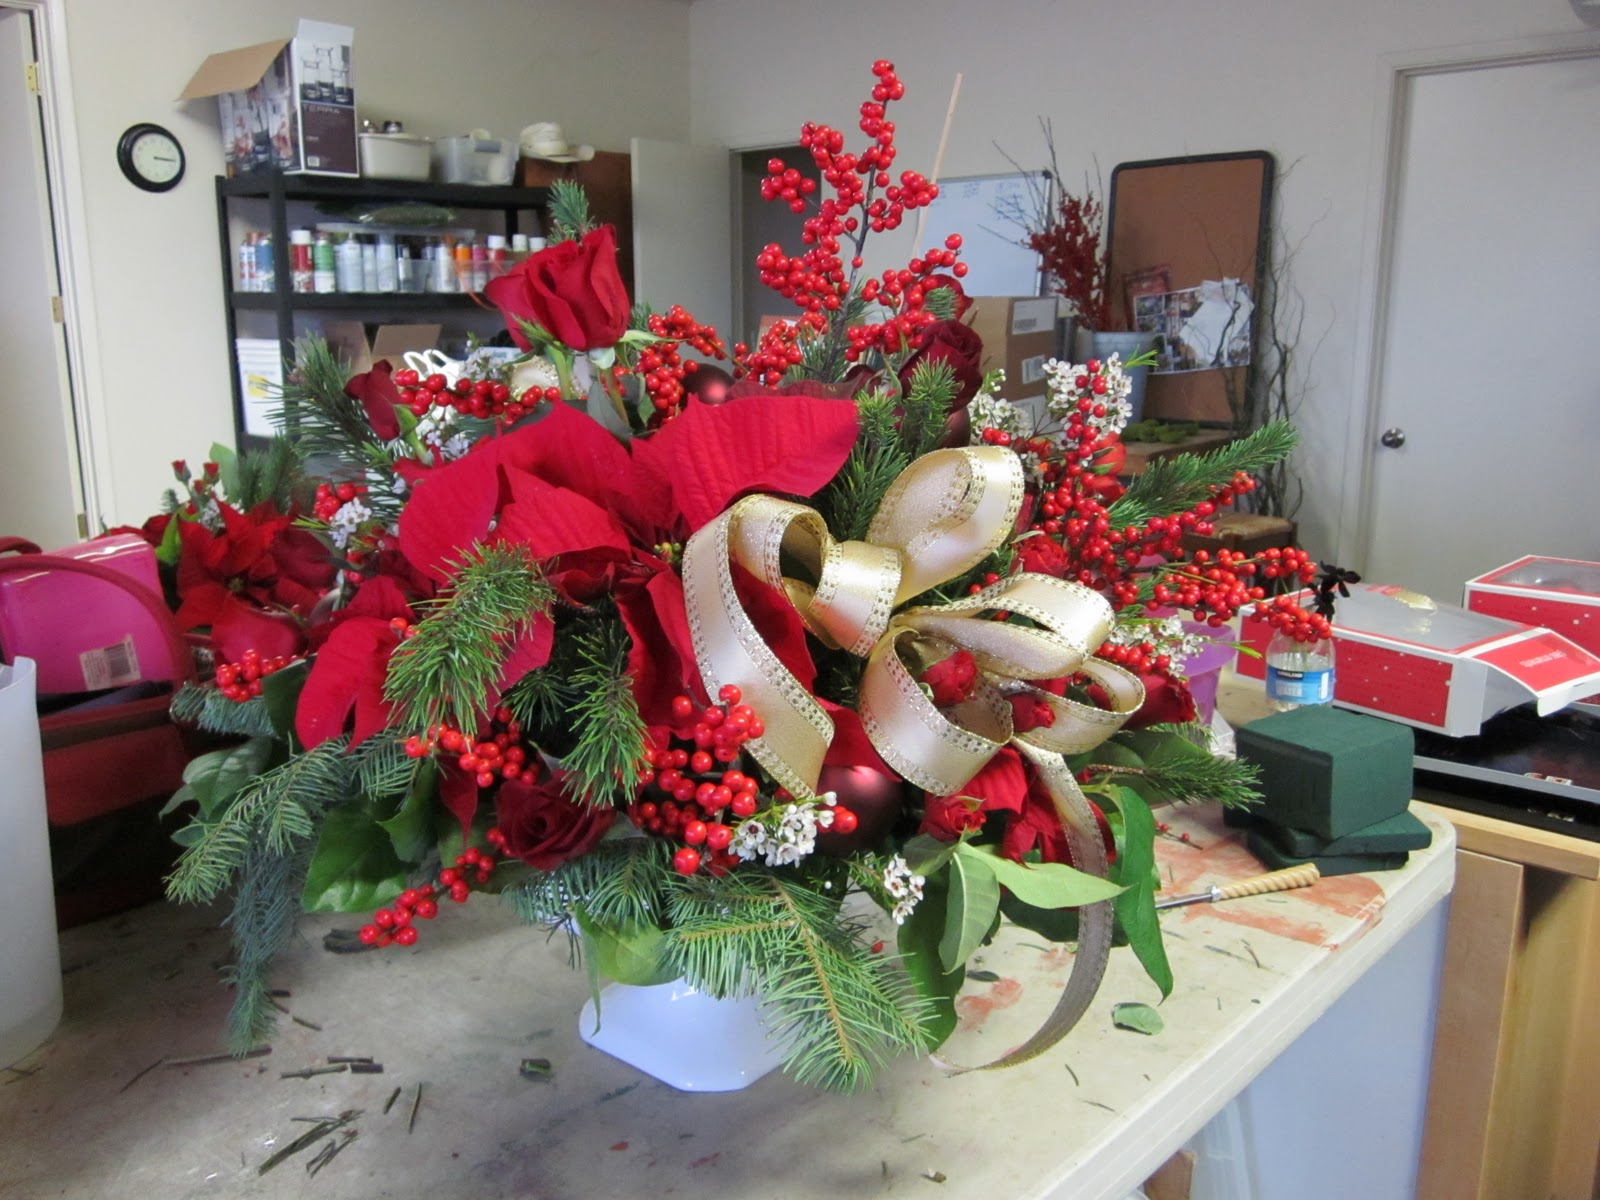 Brown bunny flowers christmas centerpiece at home